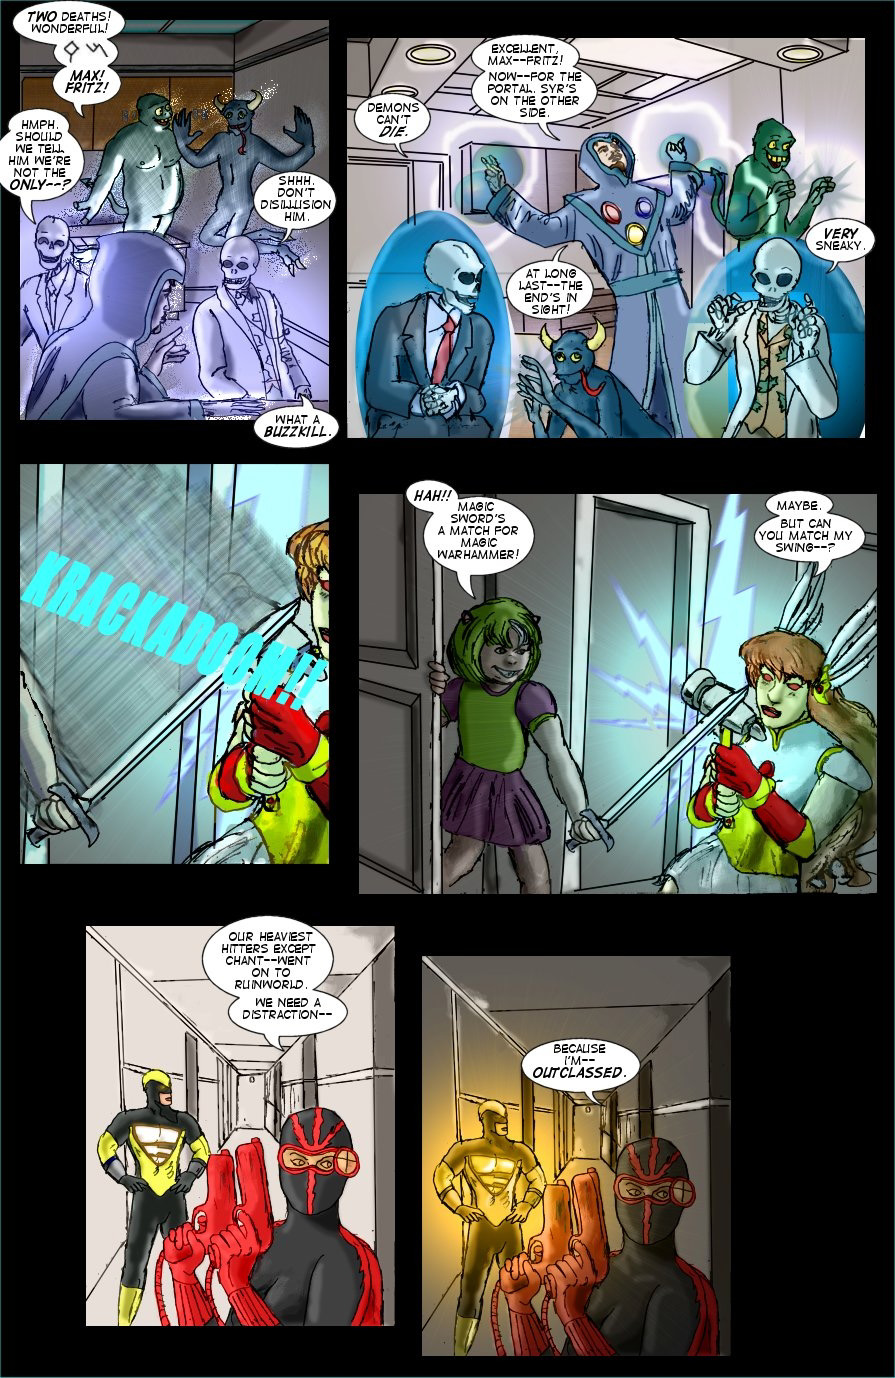 Crossoverkill - Chapter 5, Page 5